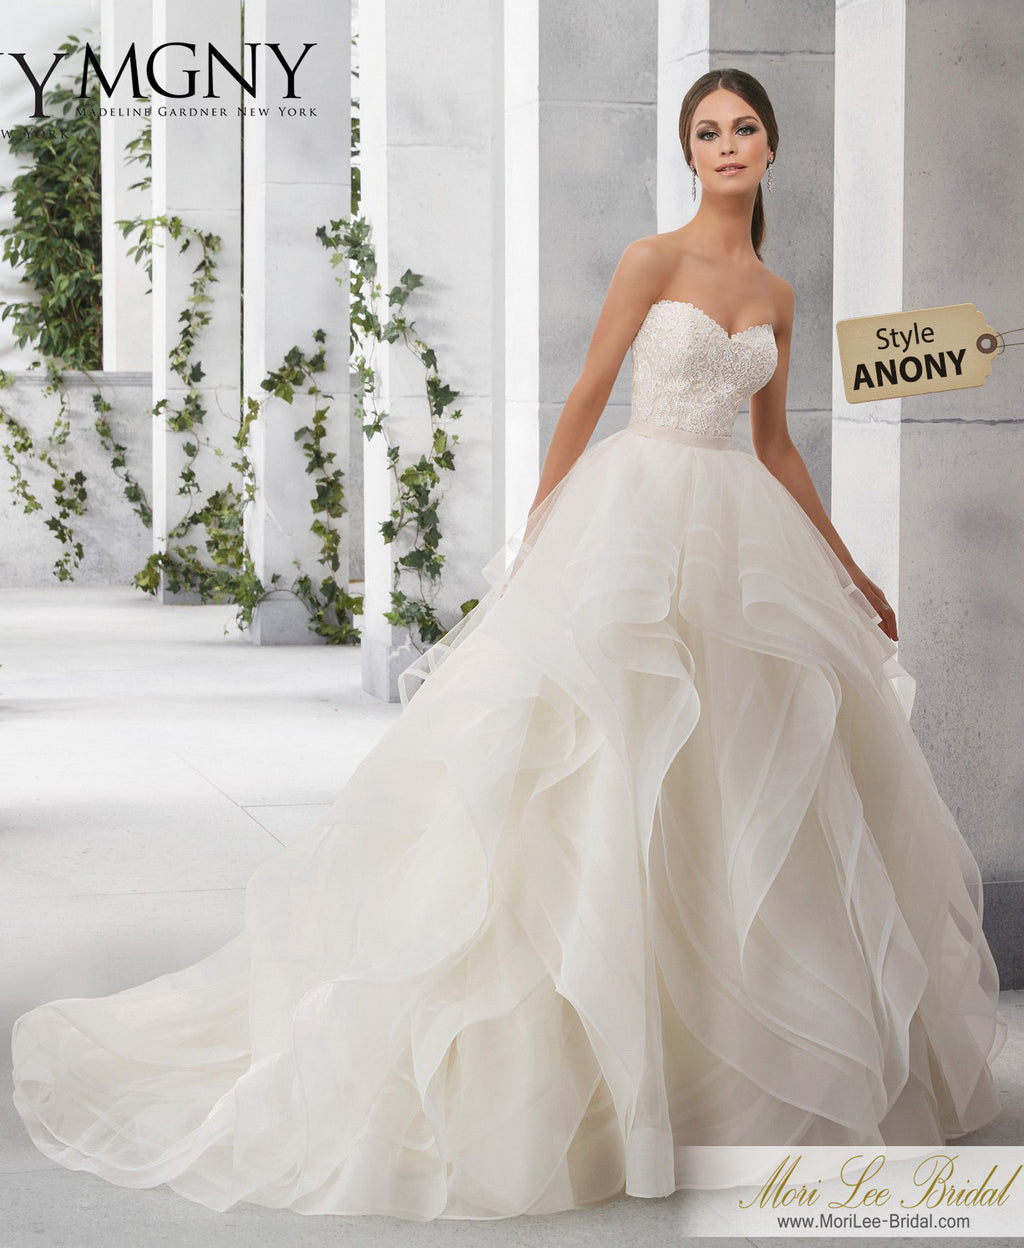 ANONY - Mori Lee Bridal